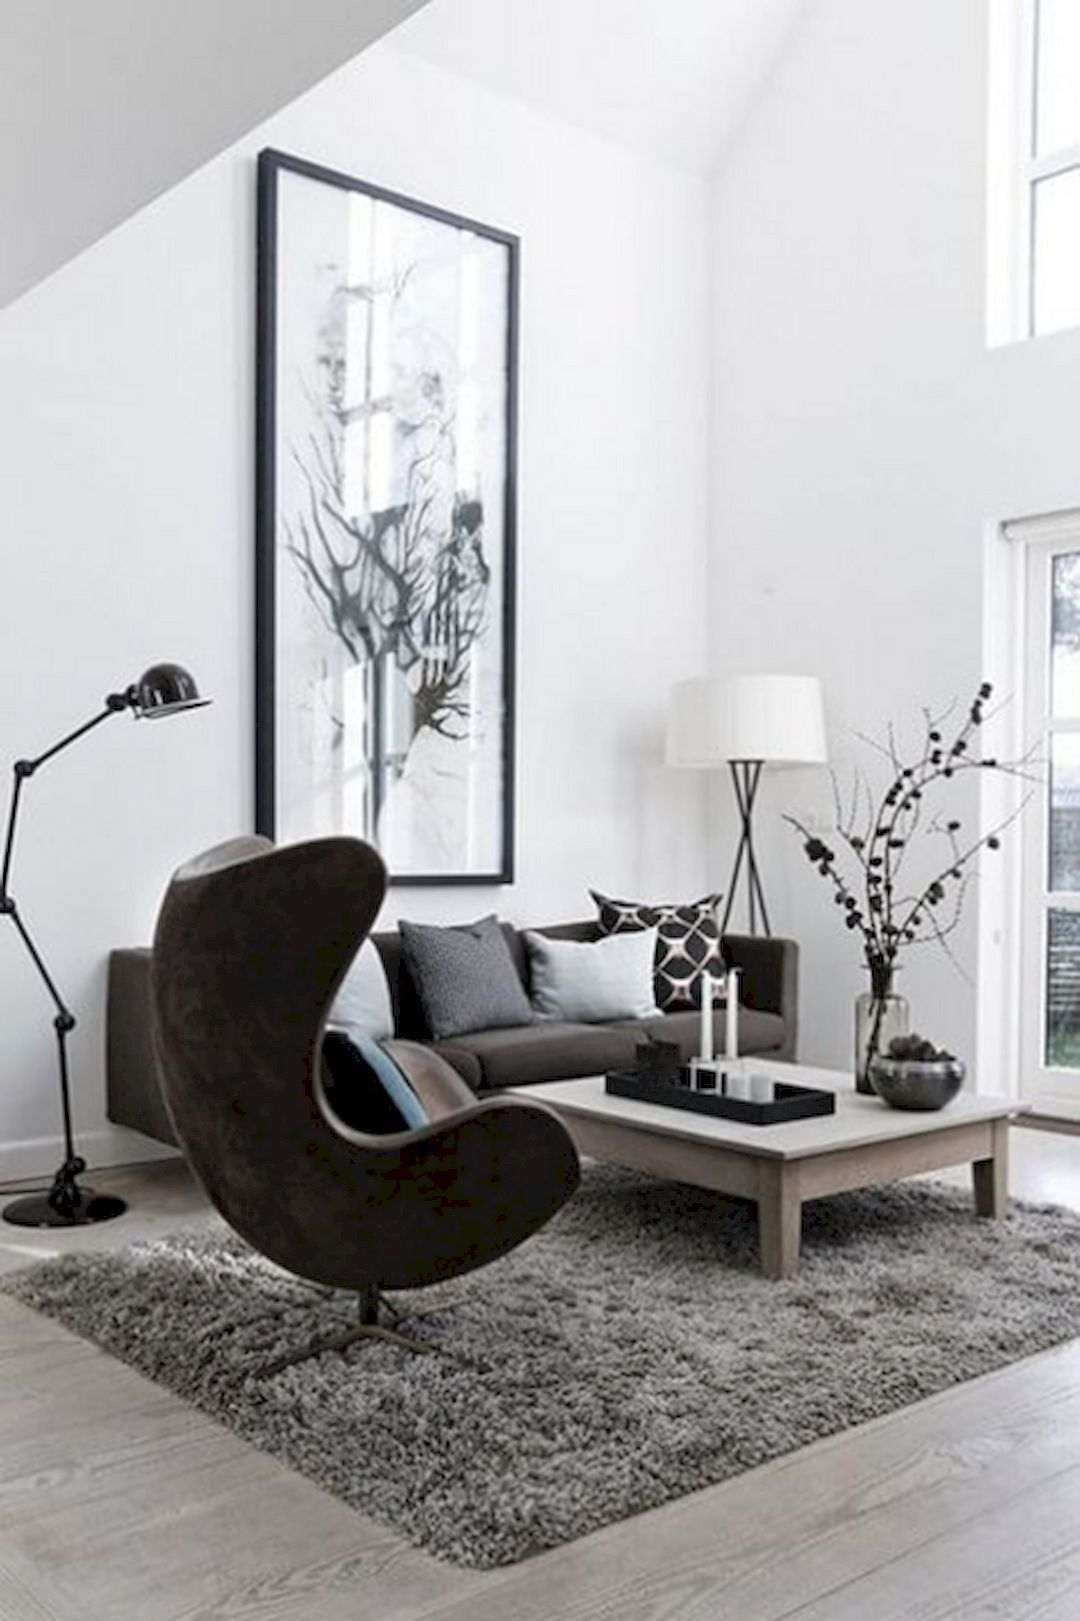 Elegant Interior Designs: 182 Monochrome Styles Collection  Https://www.futuristarchitecture.